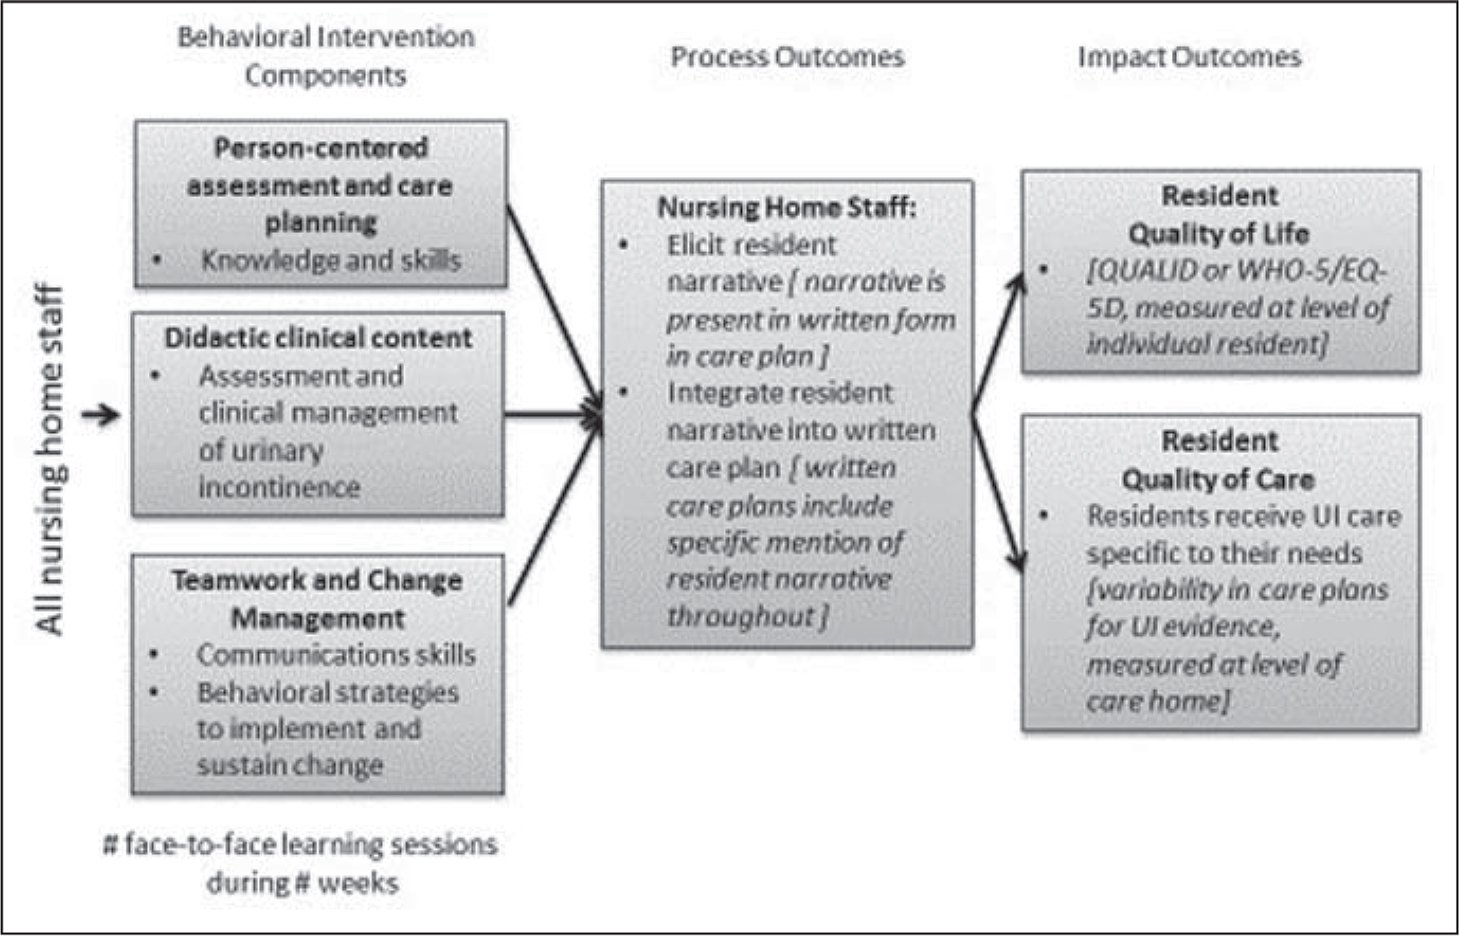 Implementation of the person-centered care approach.